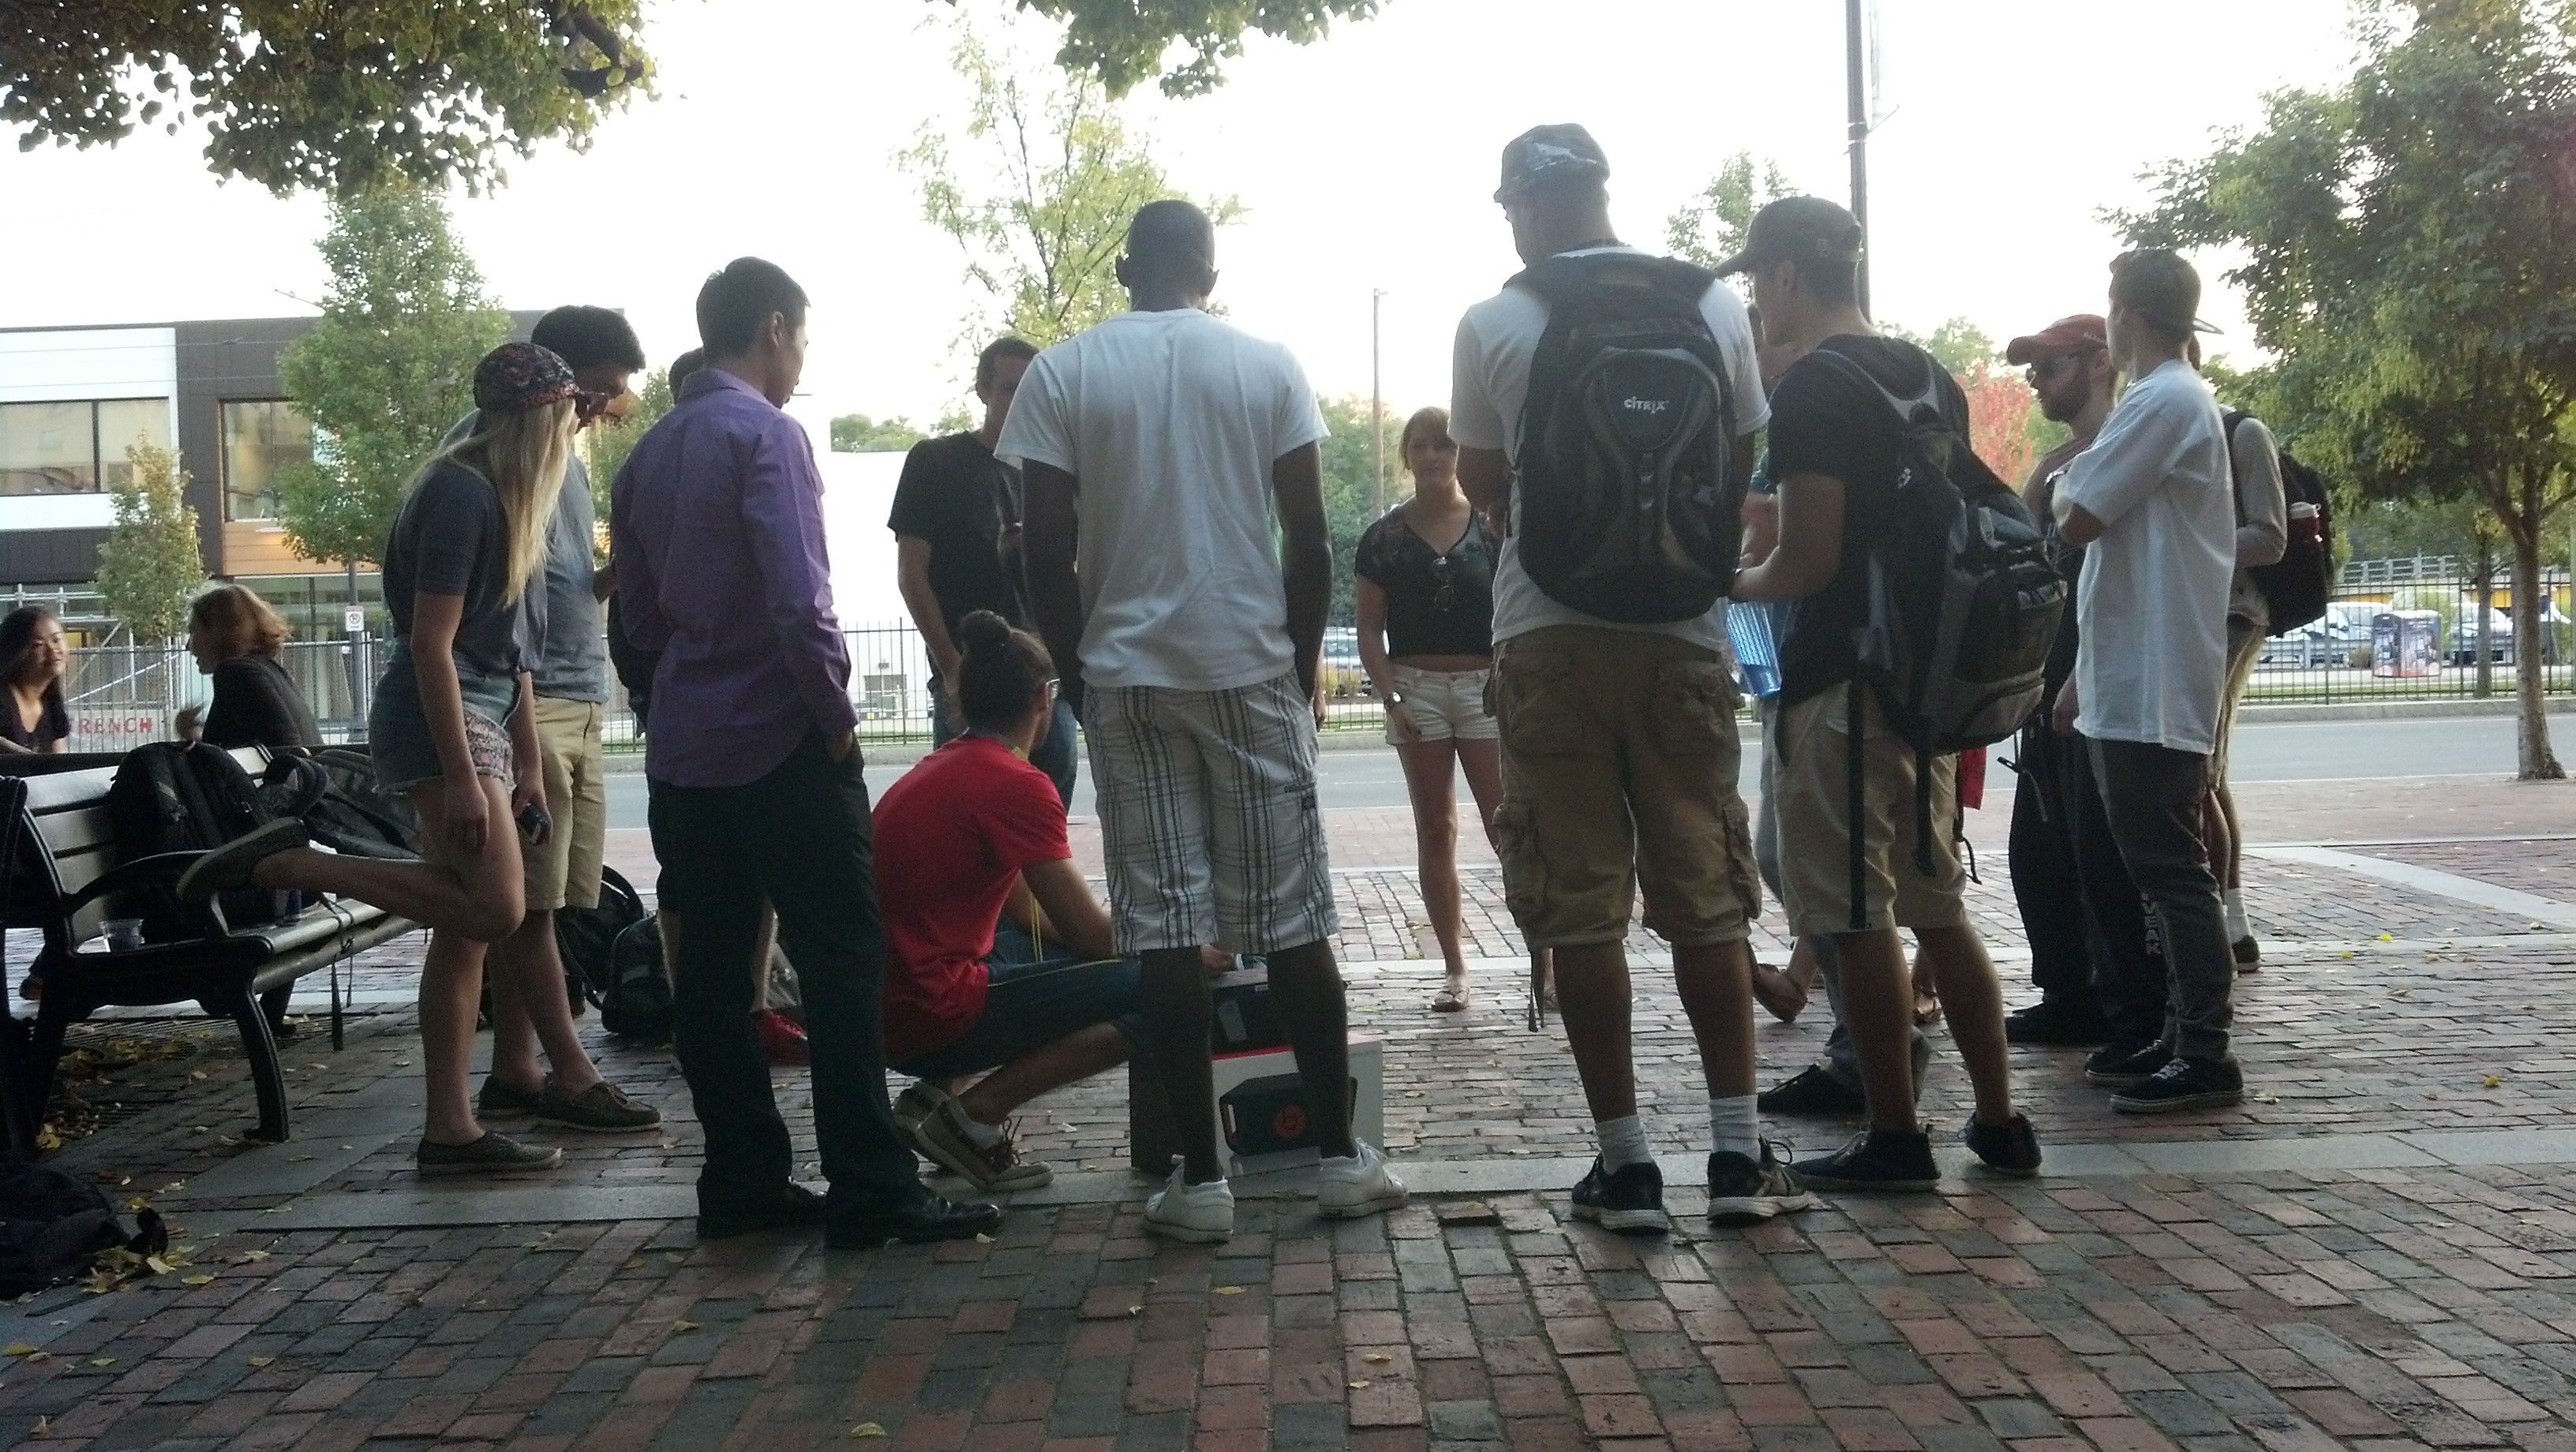 BU Hip-Hop Club Cyphers take place in front of the GSU on Wednesday's at 5:00 pm.